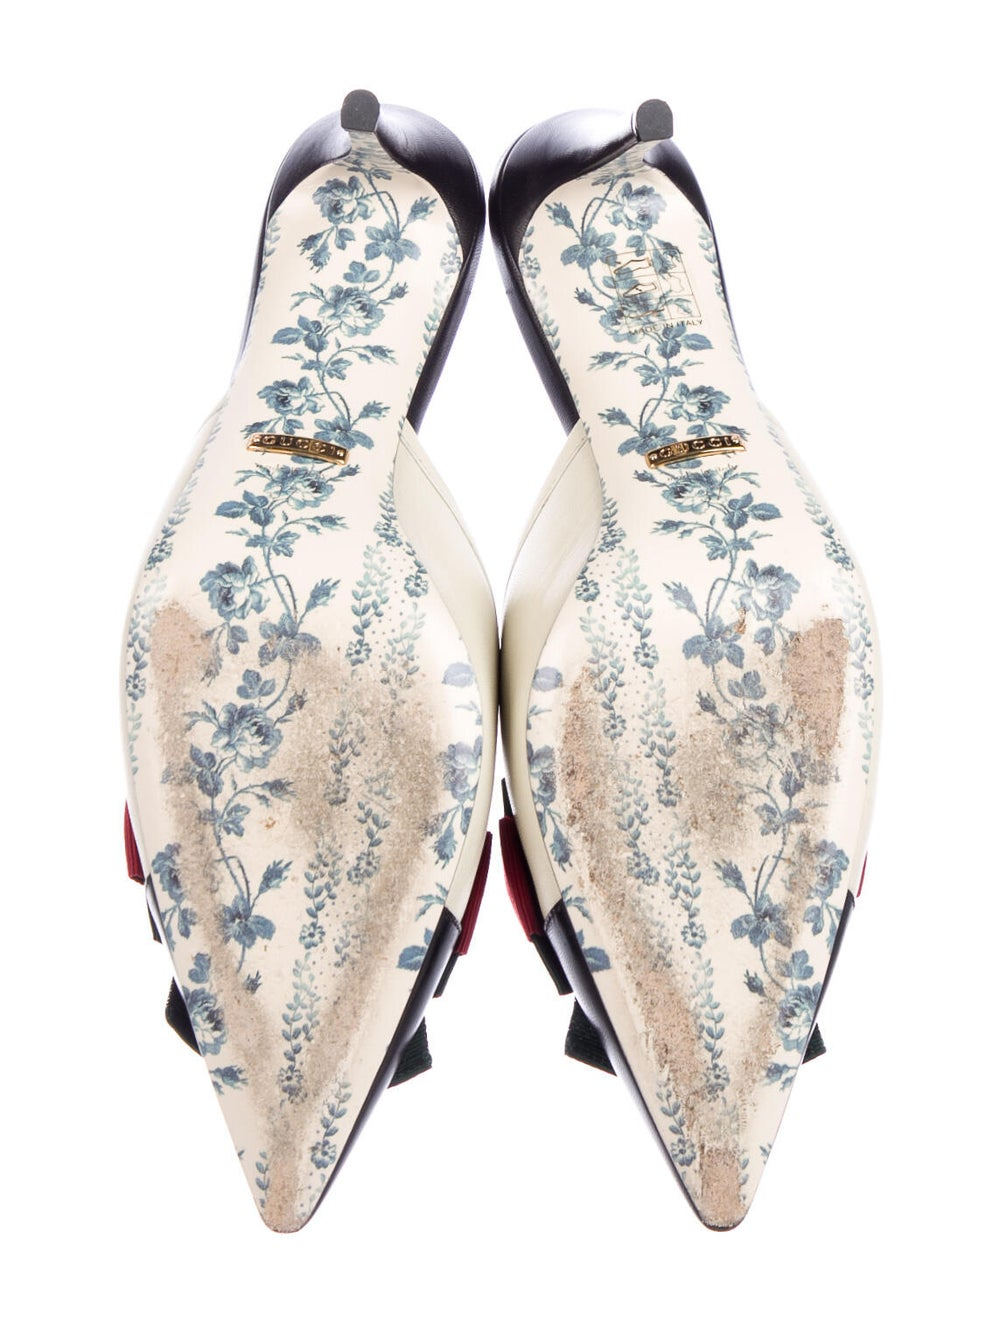 Gucci Web Accent Leather Mules - image 5